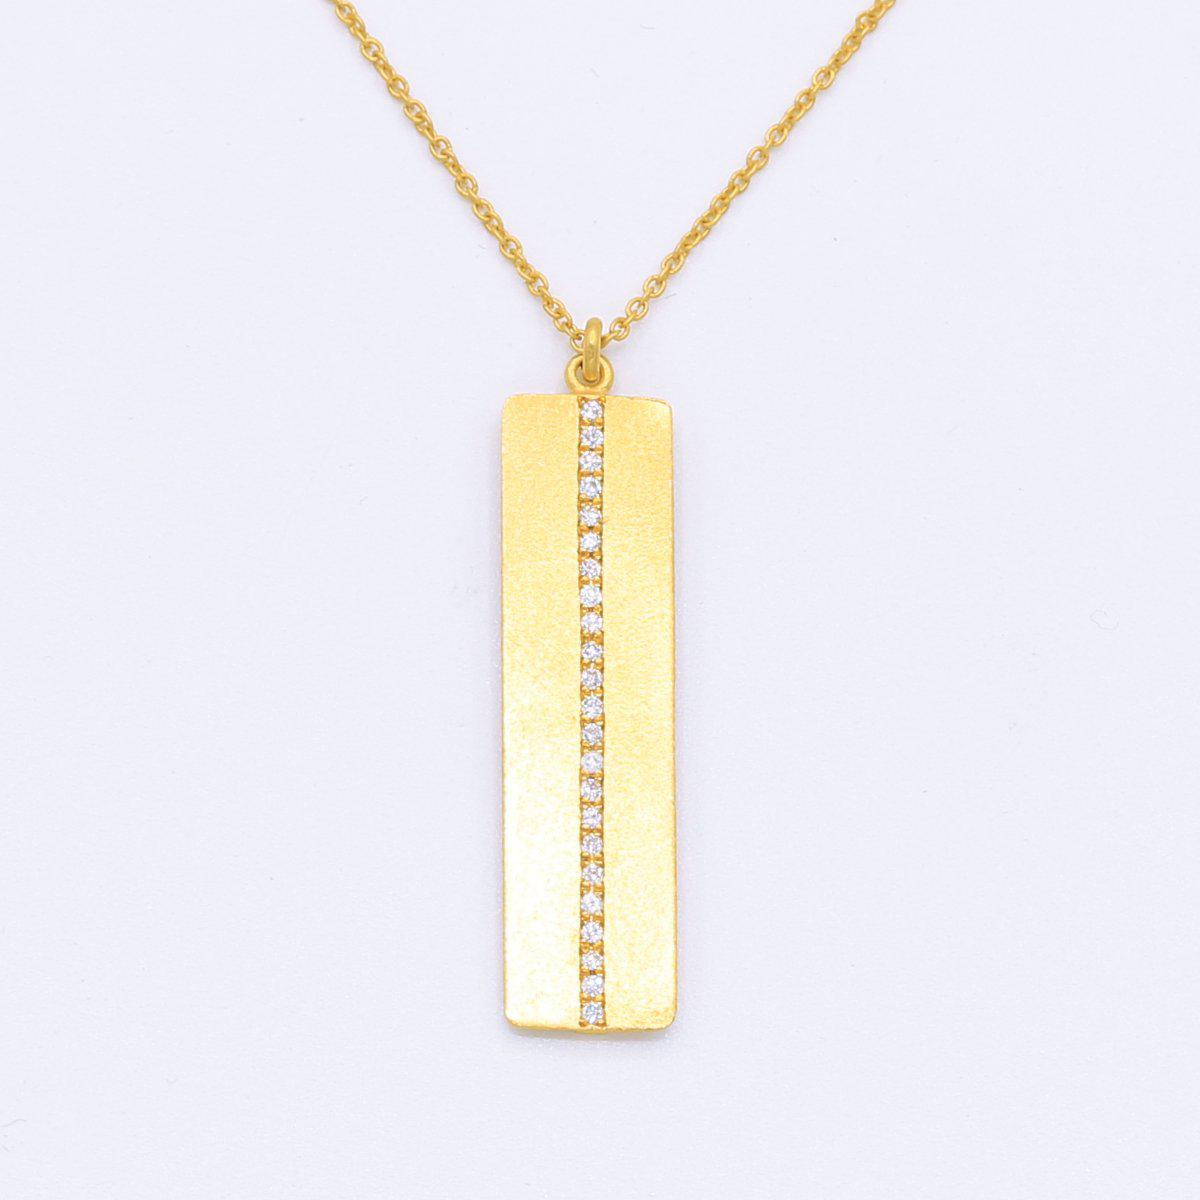 Marika Diamond & 14k Gold Necklace - M5602-Marika-Renee Taylor Gallery